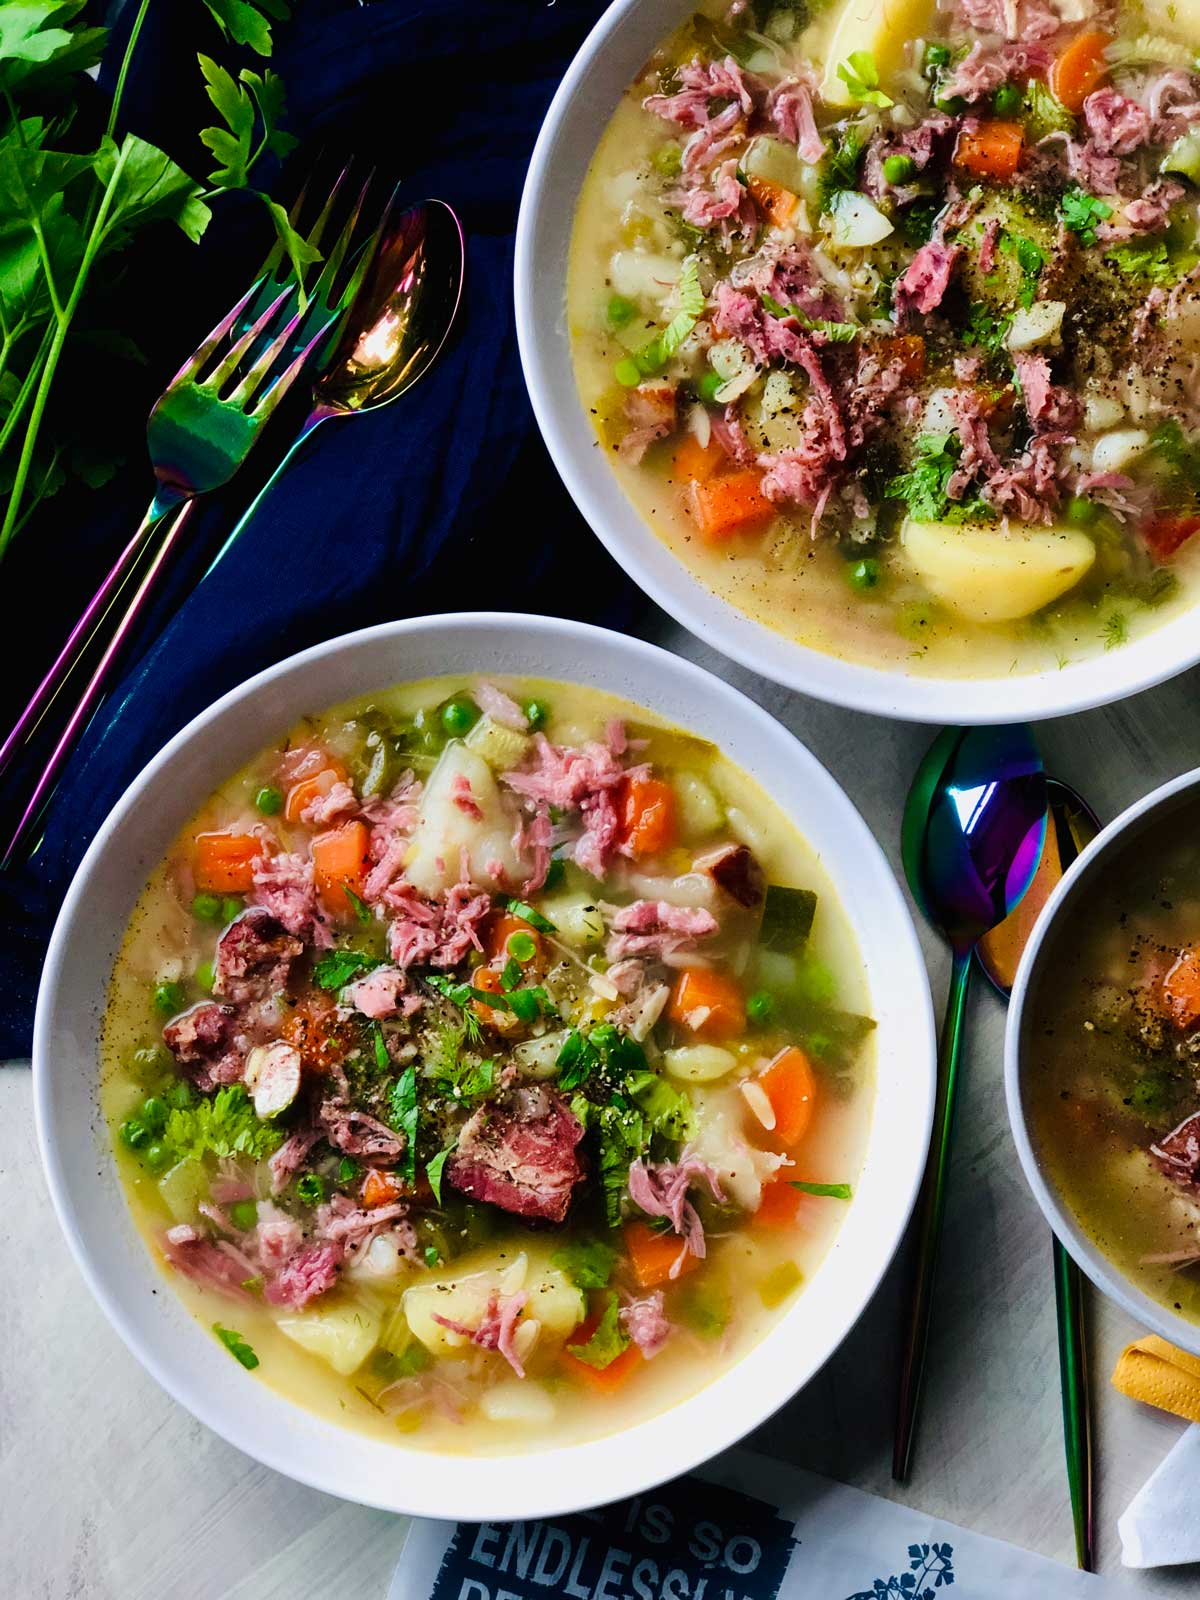 Potato soup with ham hock and petit pois